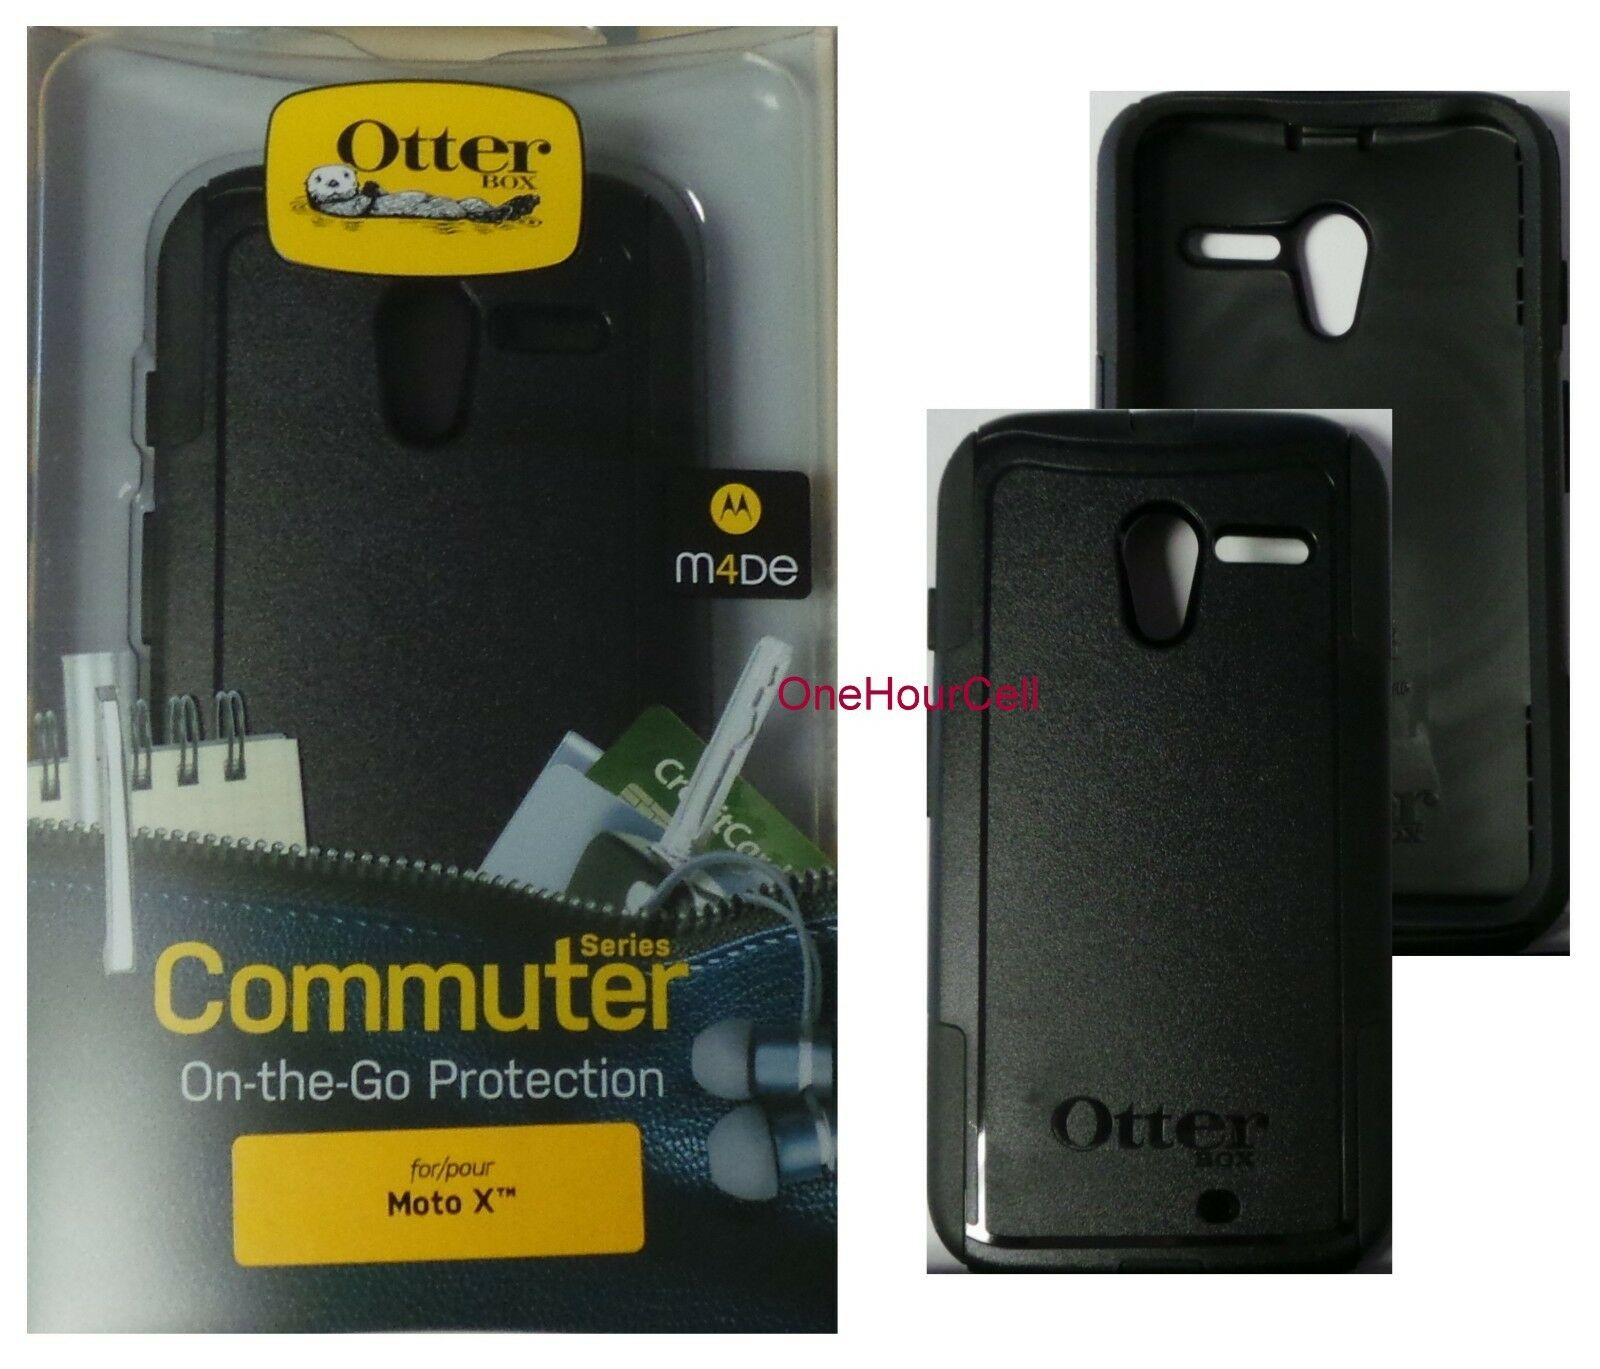 Купить OtterBox Commuter Series Slim Case for Motorola Moto X 1st Gen. Black, 77-32122